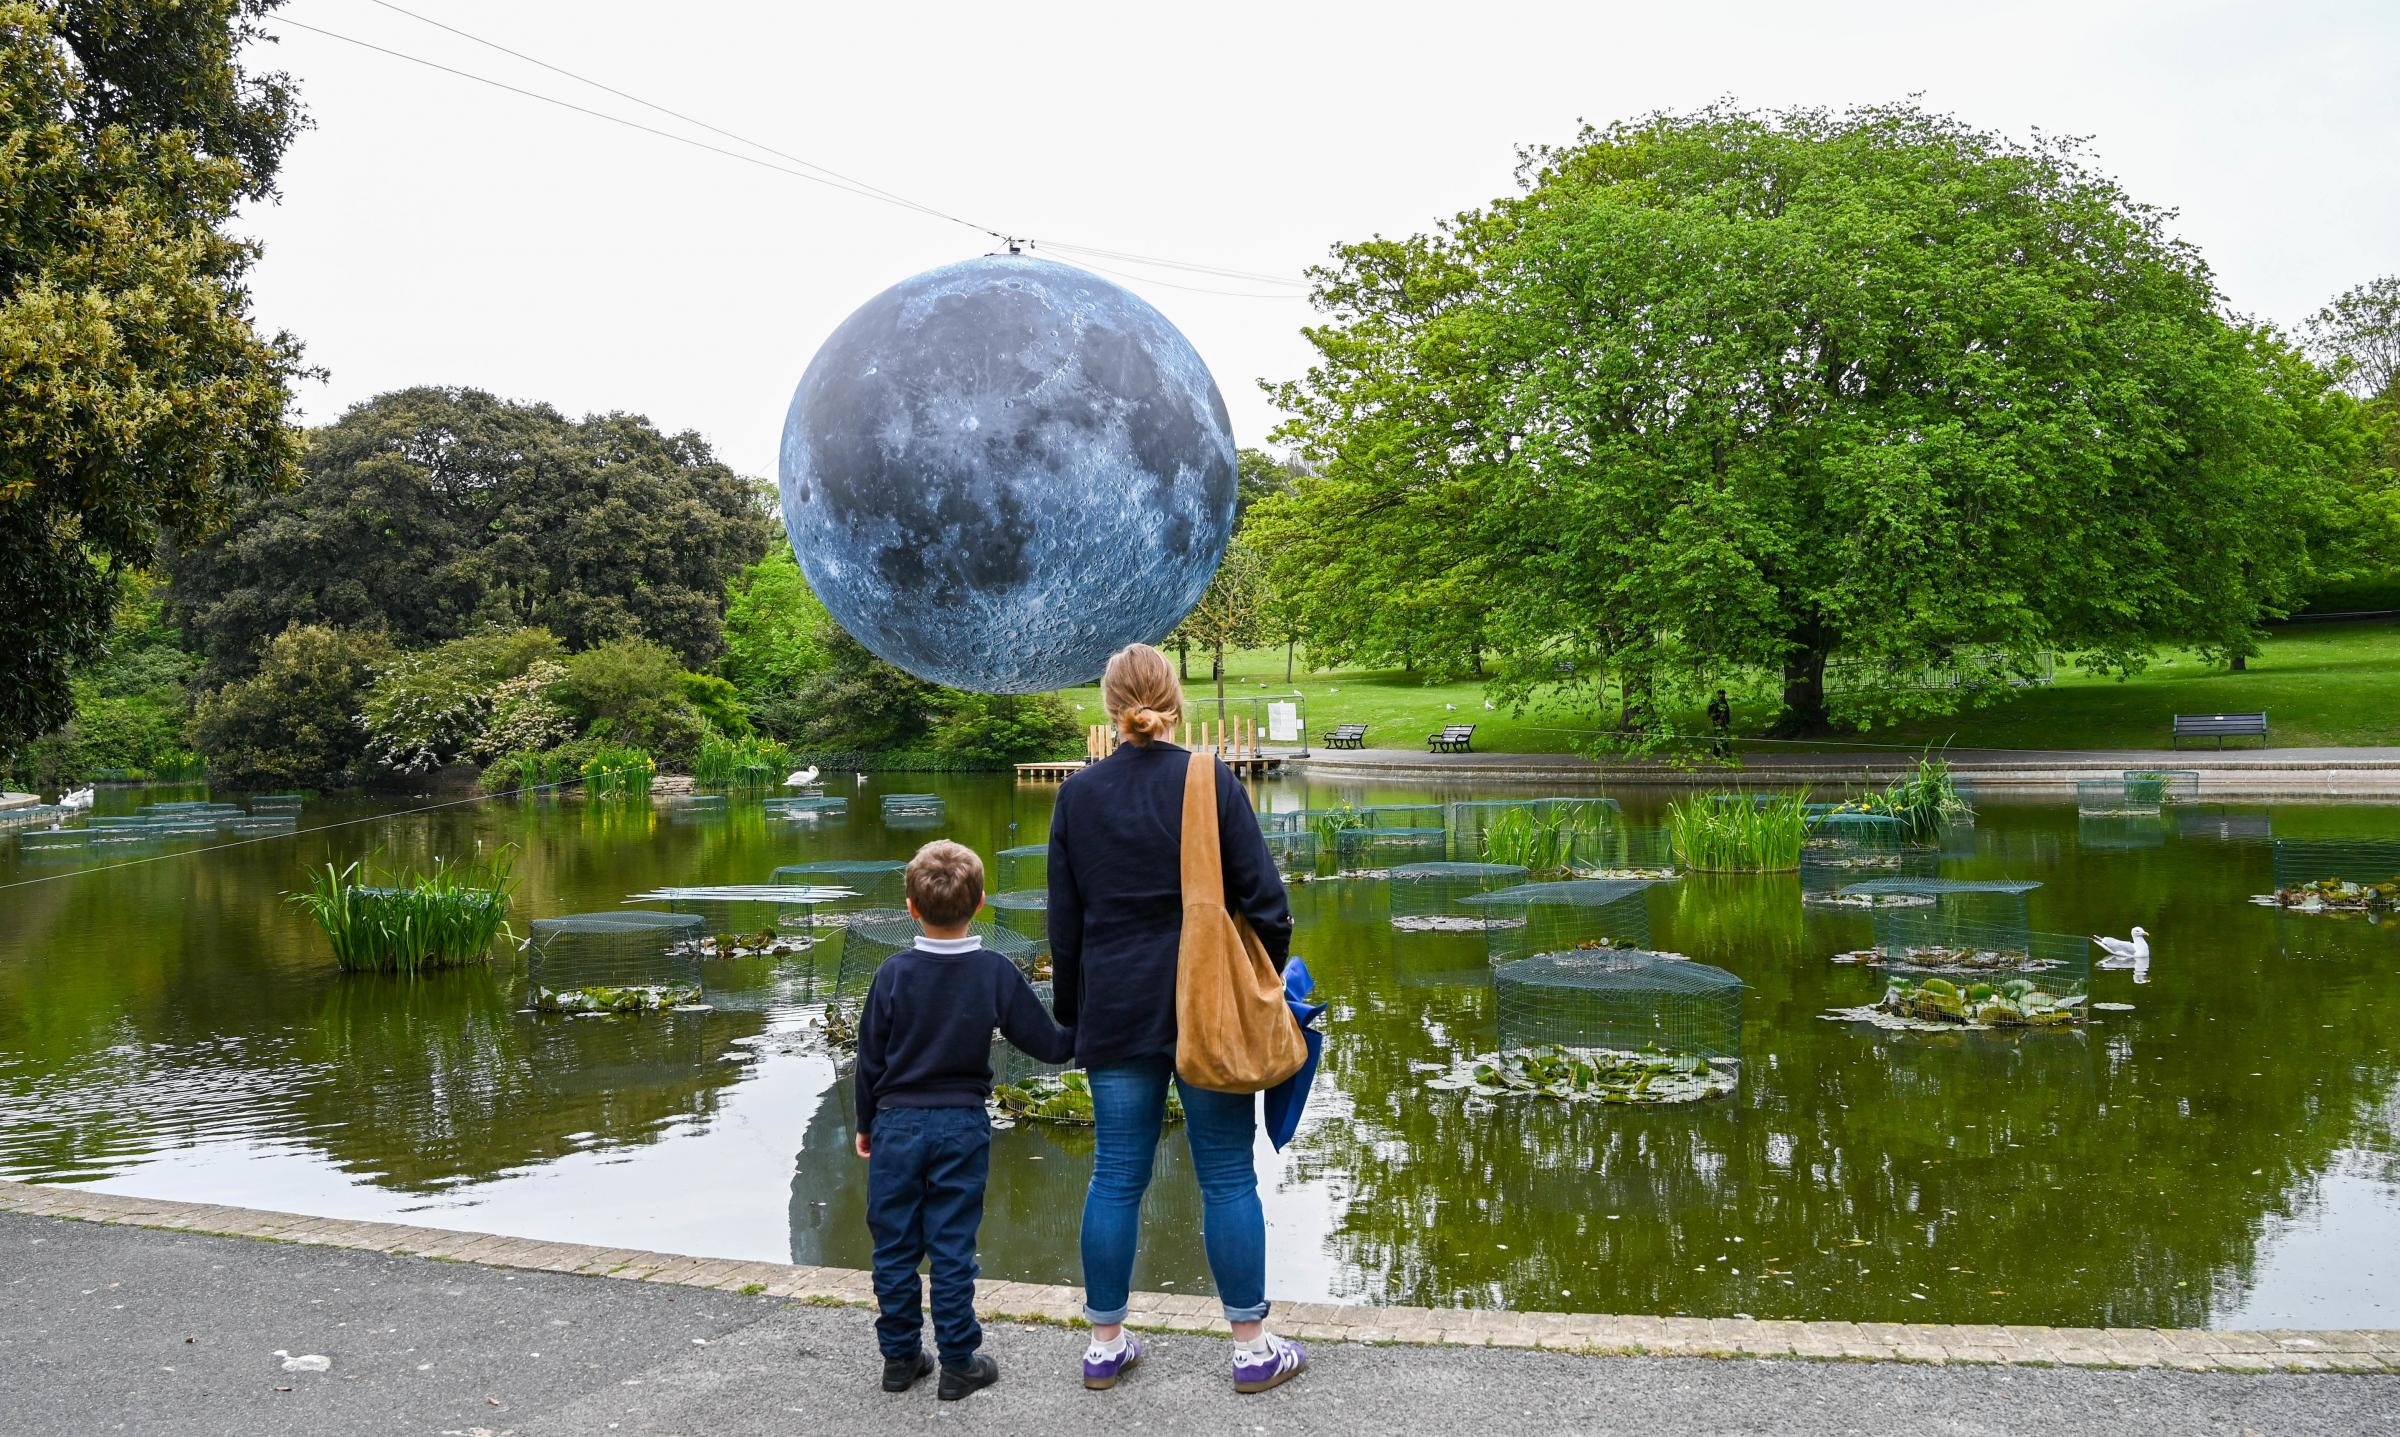 Brighton UK 30th April 2019 - A large model of the moon rises above Queens Park pond in Brighton this morning ready for tonights Brighton Festival event Museum of the Moon by Luke Jerram . The moon will be lit up tonight and over the weekend accompani